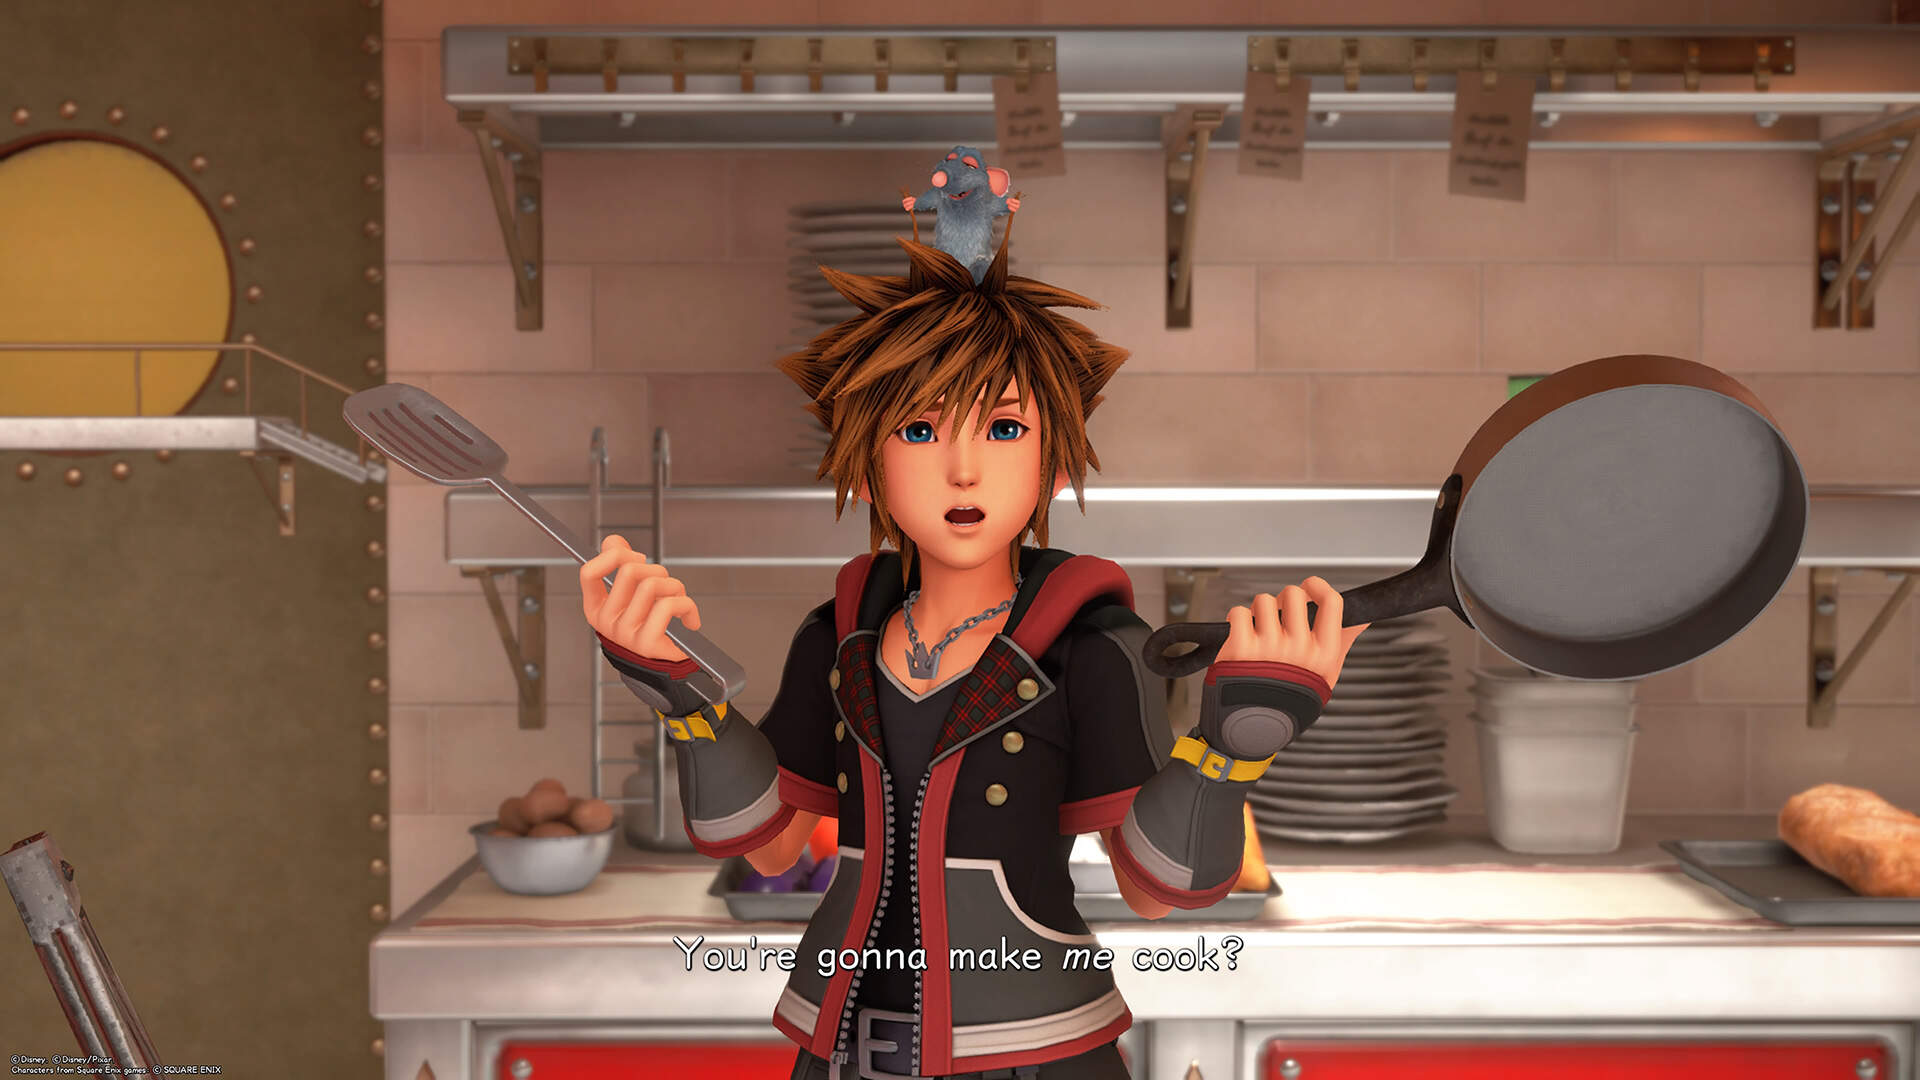 Kingdom Hearts 3 Twilight Town Walkthrough - Treasure Chests, Map Locations, 9 Ingredients For Little Chef